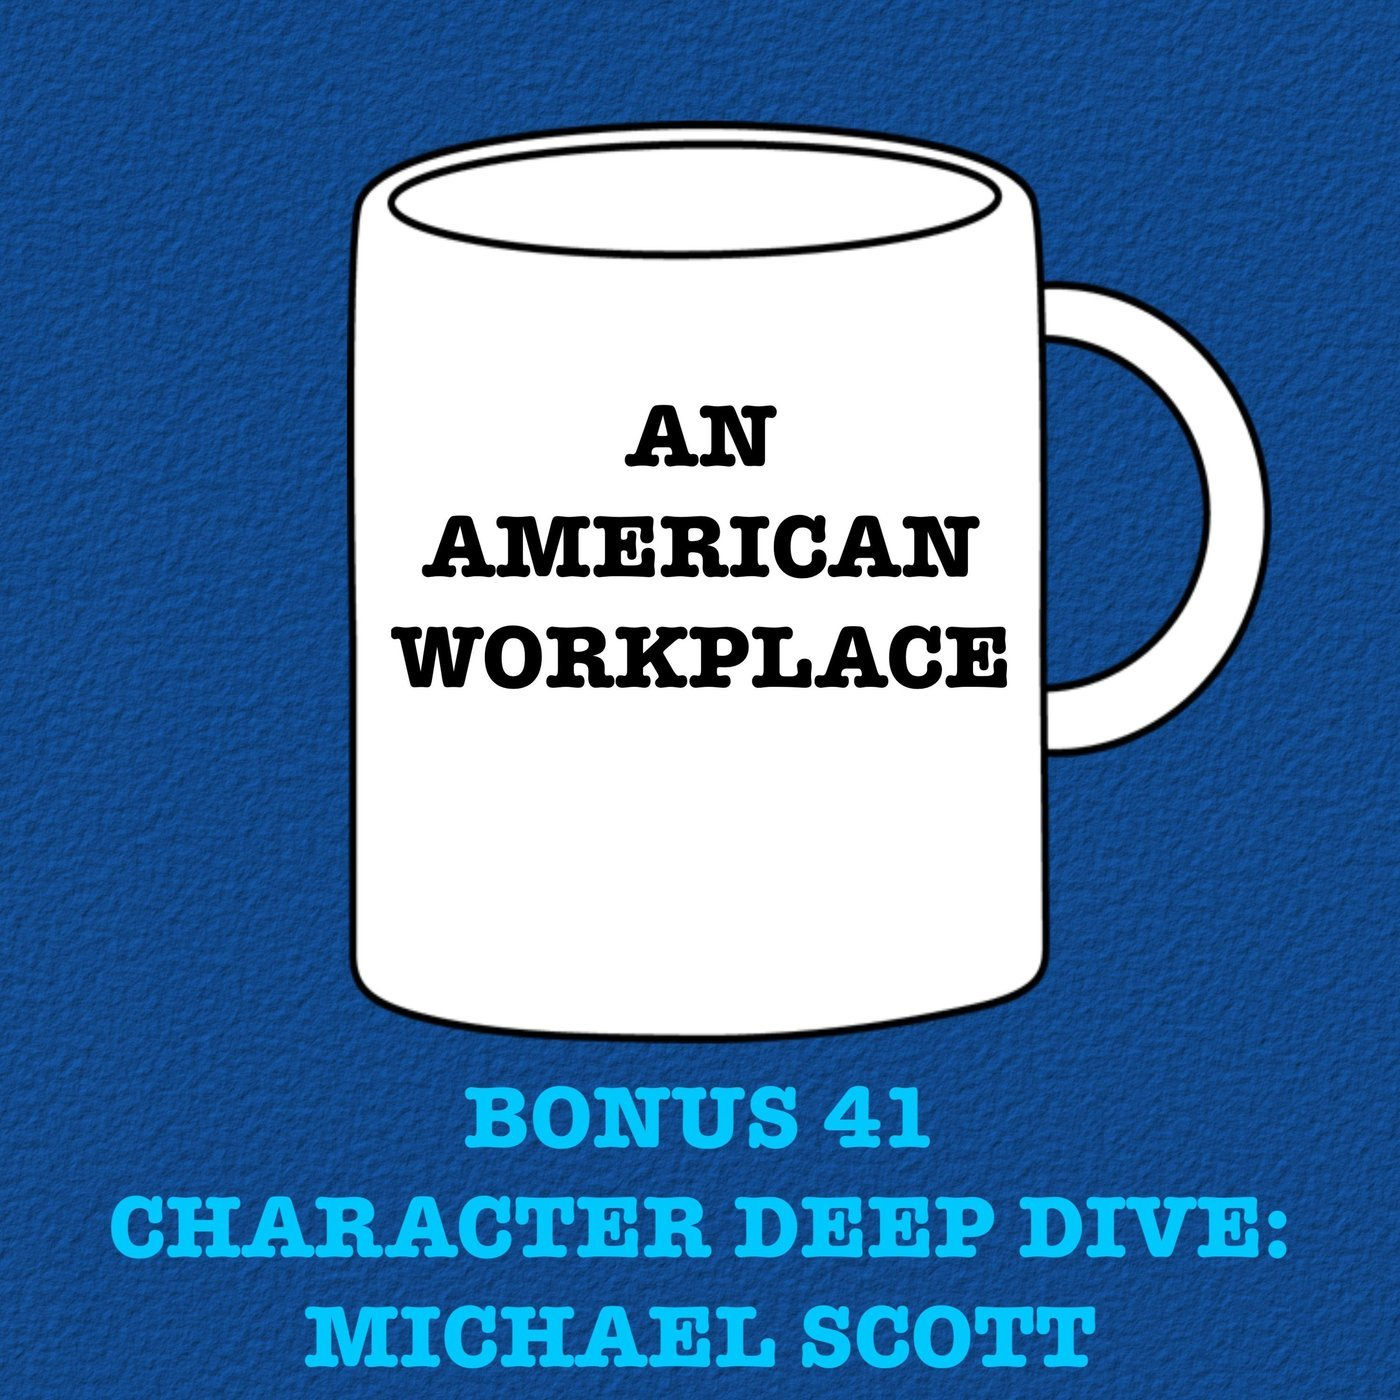 An American Workplace | A 'The Office' Podcast patreon41: Bonus 41 - Character Deep Dive: Michael Scott